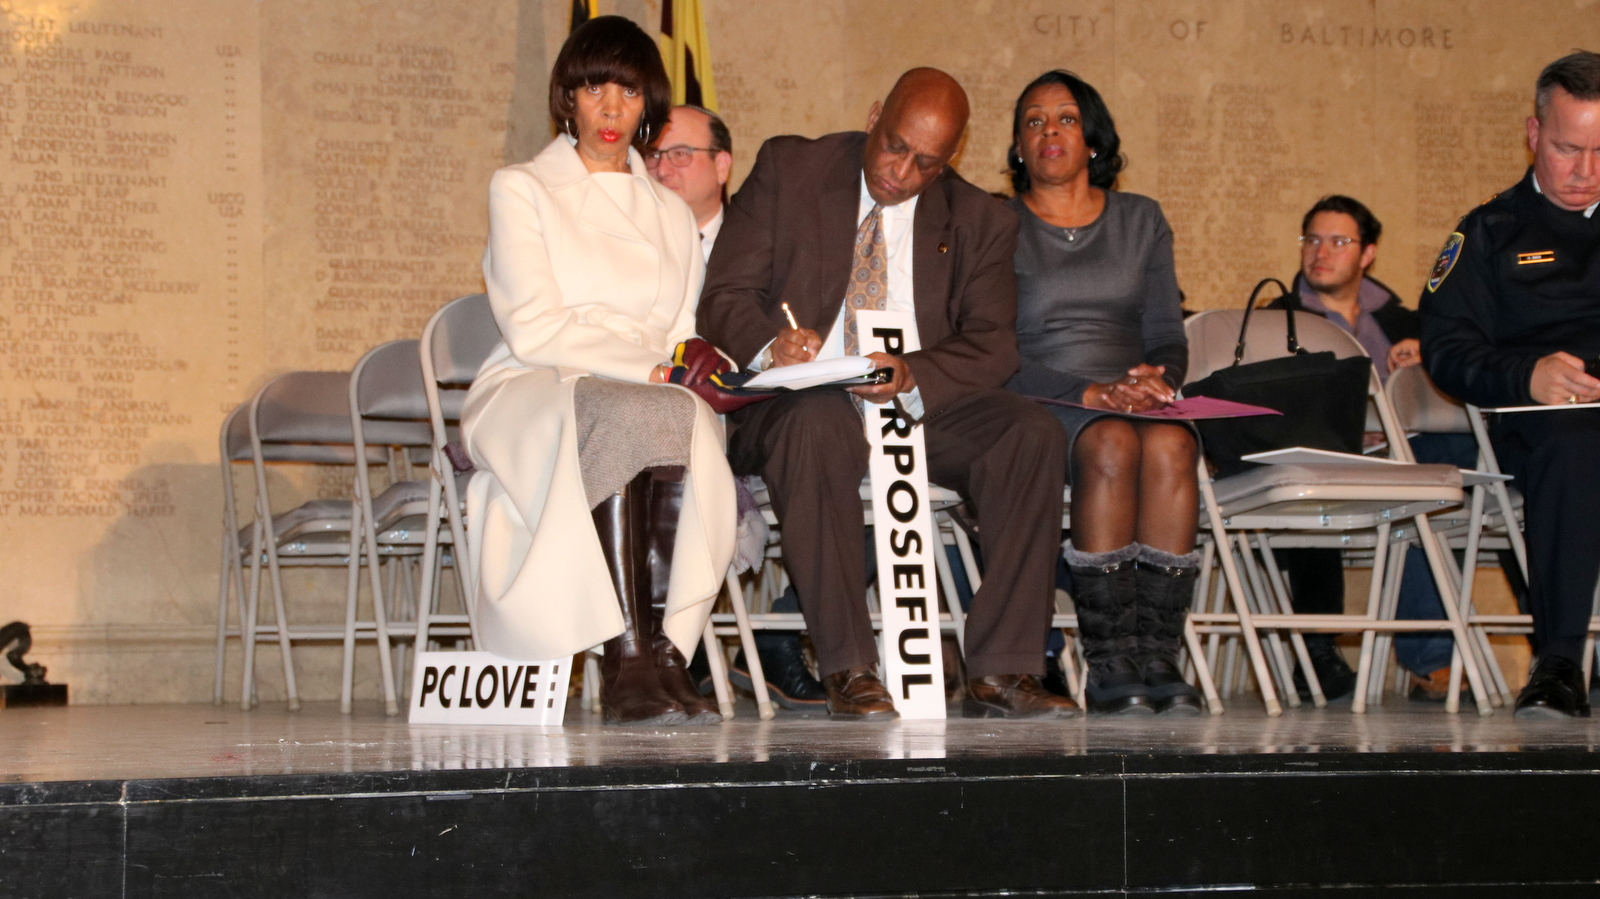 Mayor Pugh, Council President Jack Young, Comptroller Joan Pratt and Police Commissioner Kevin Davis onstage in the War Memorial Building. (Fern Shen)